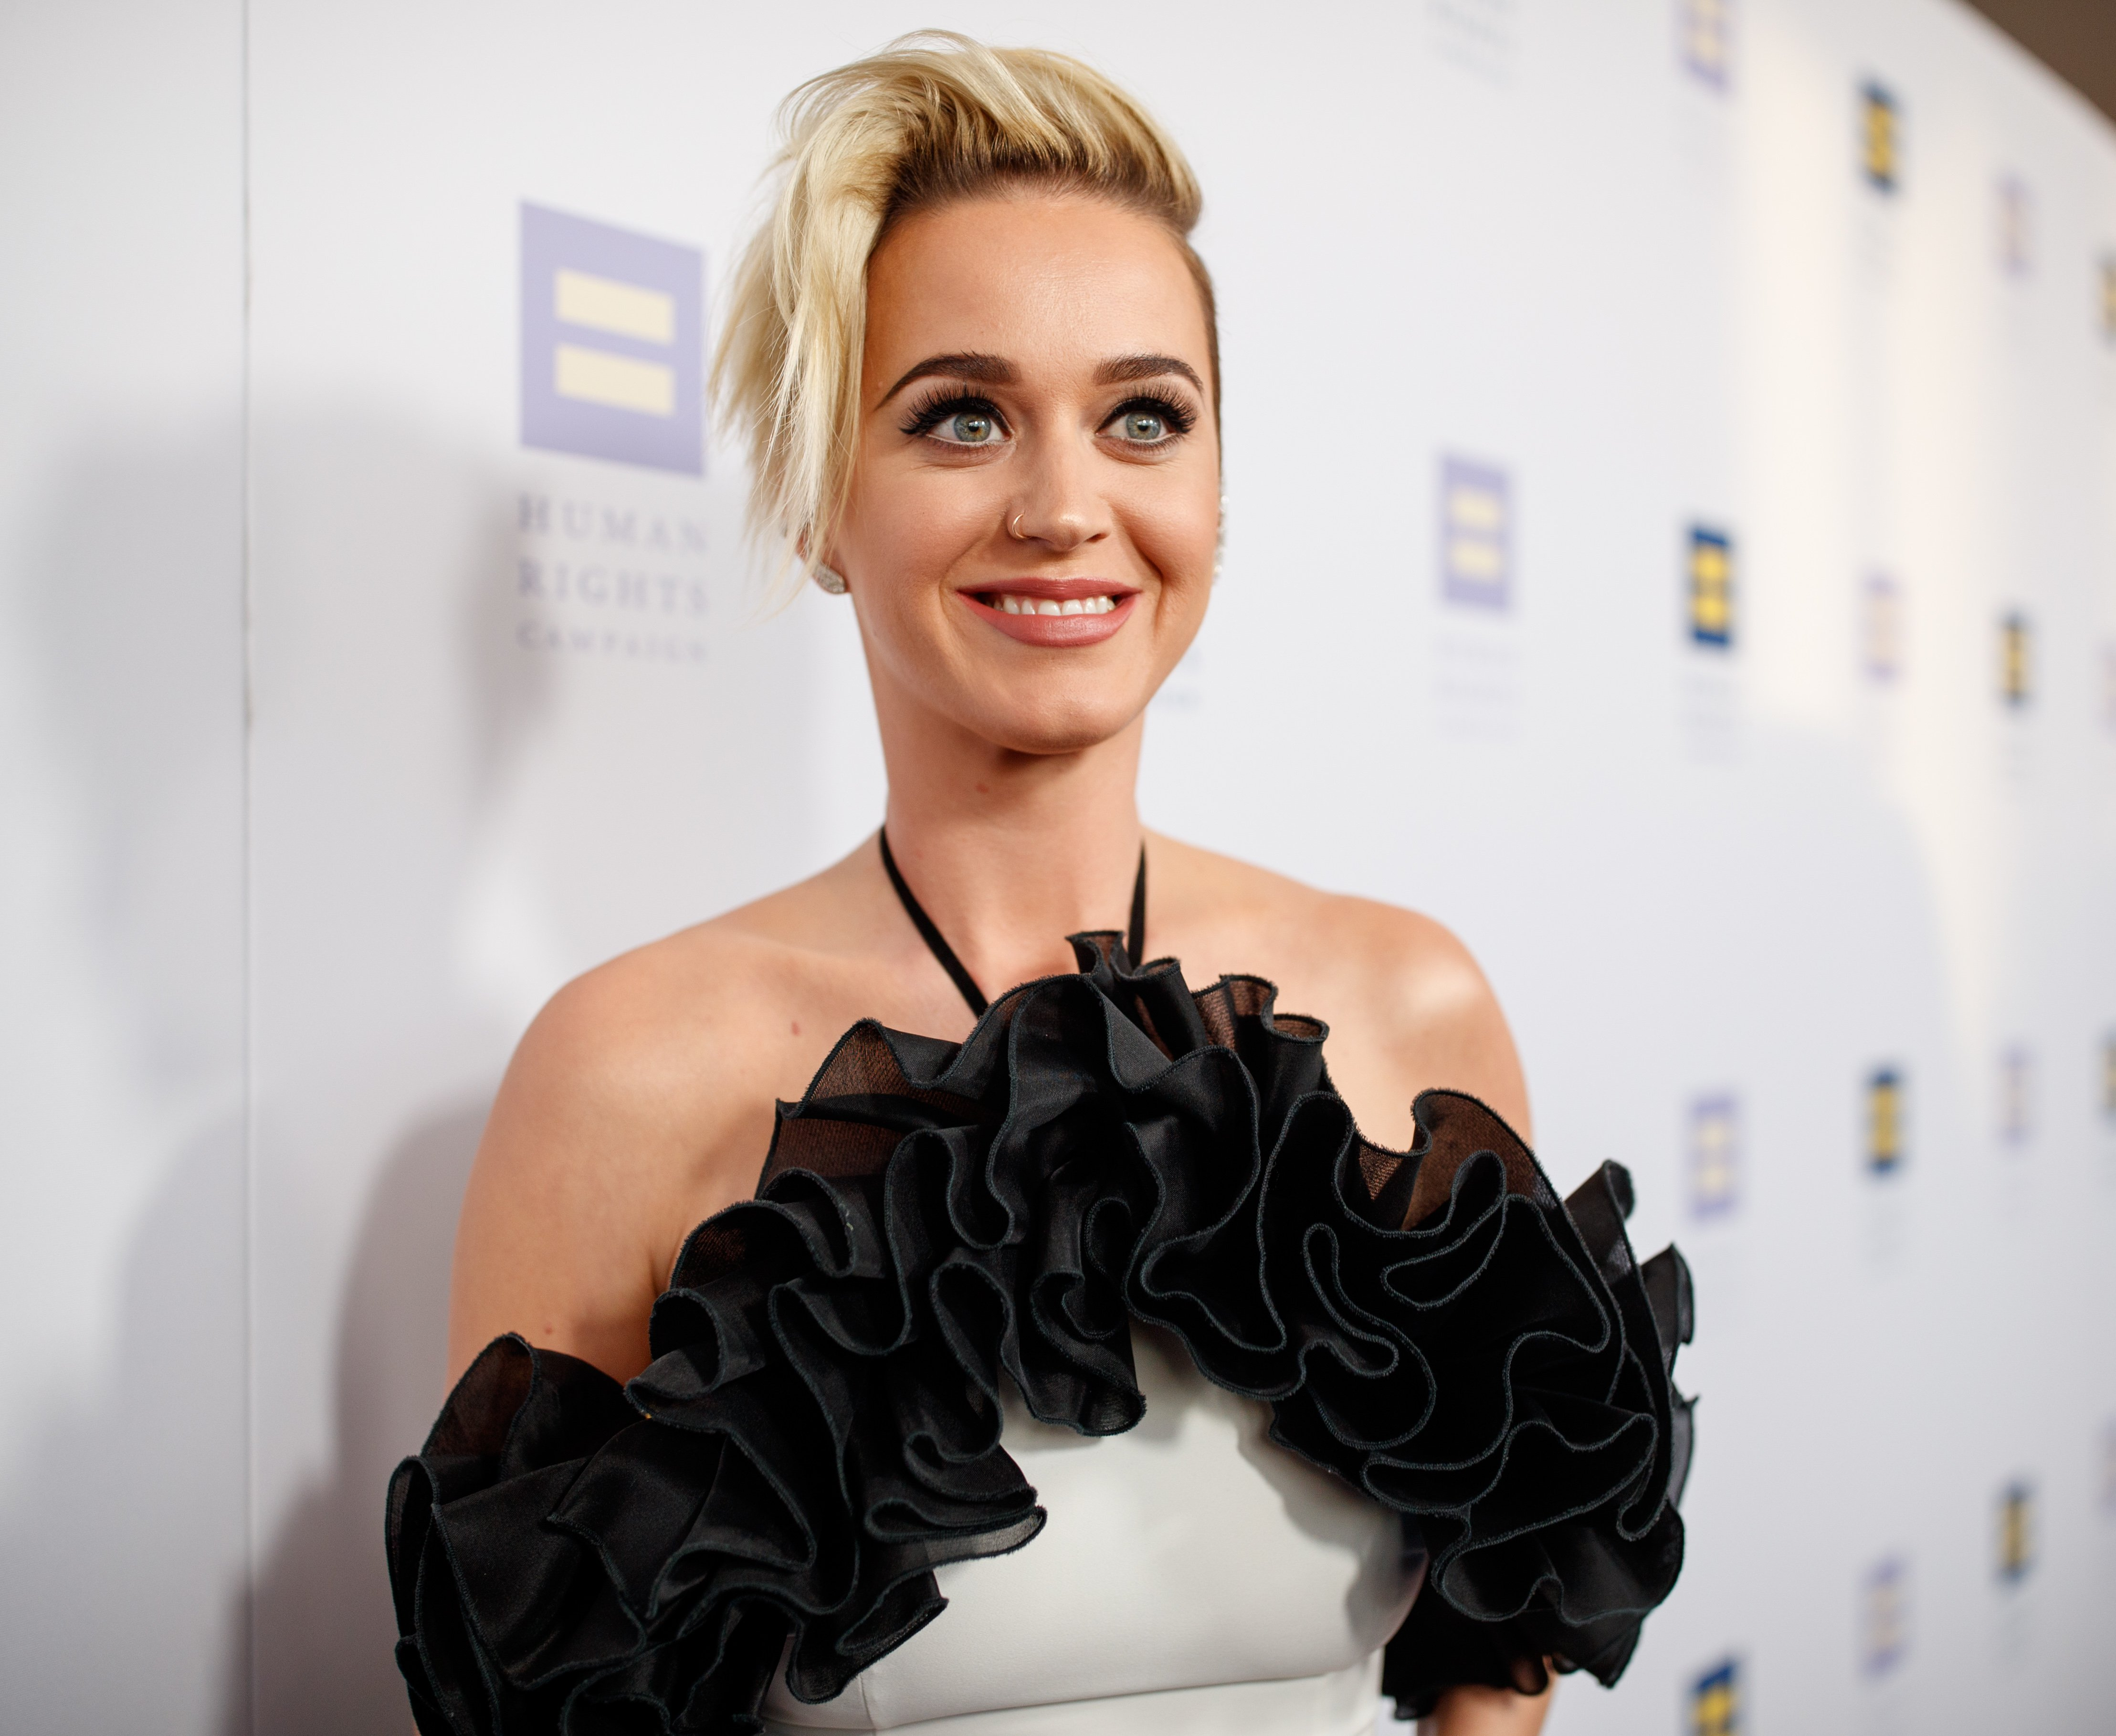 Pop singer Katy Perry attends the 2017 Human Rights Gala in Los Angeles. | Photo: Getty Images